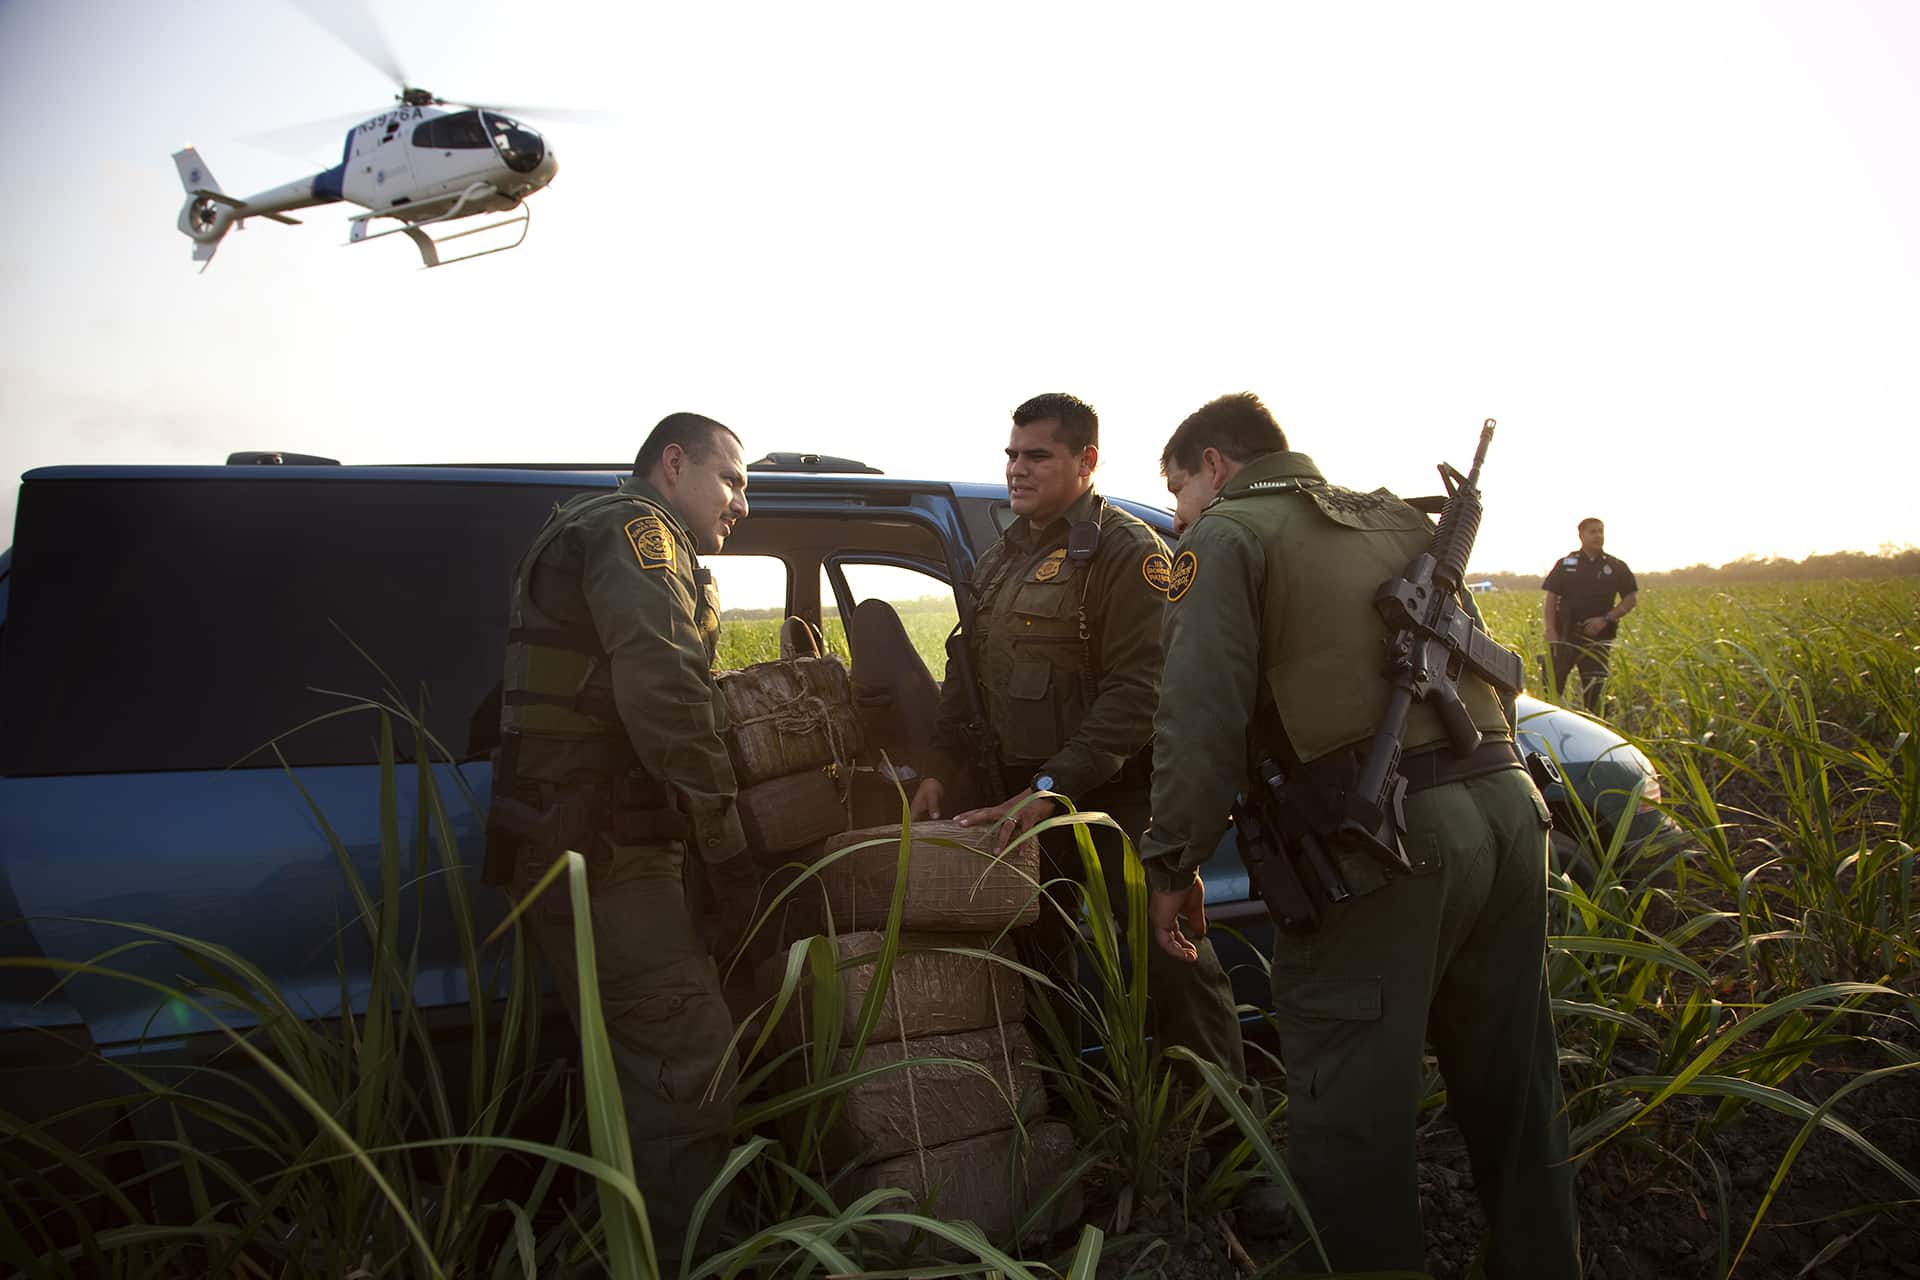 Helicopter unit of the Office of Air and Marine Patrool the border